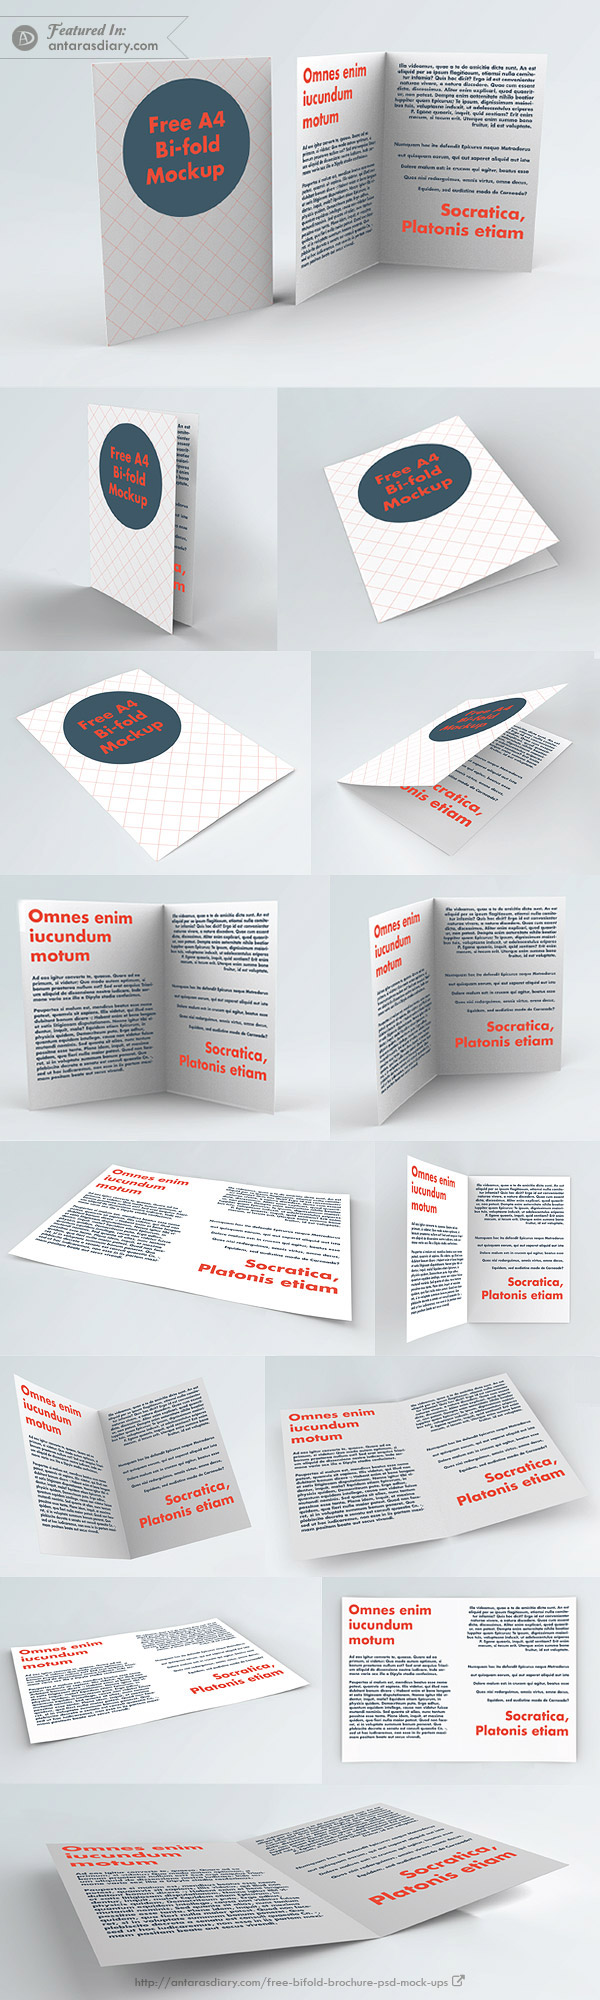 100% Free A4 Bi-Fold Brochure Mockup - 14 views